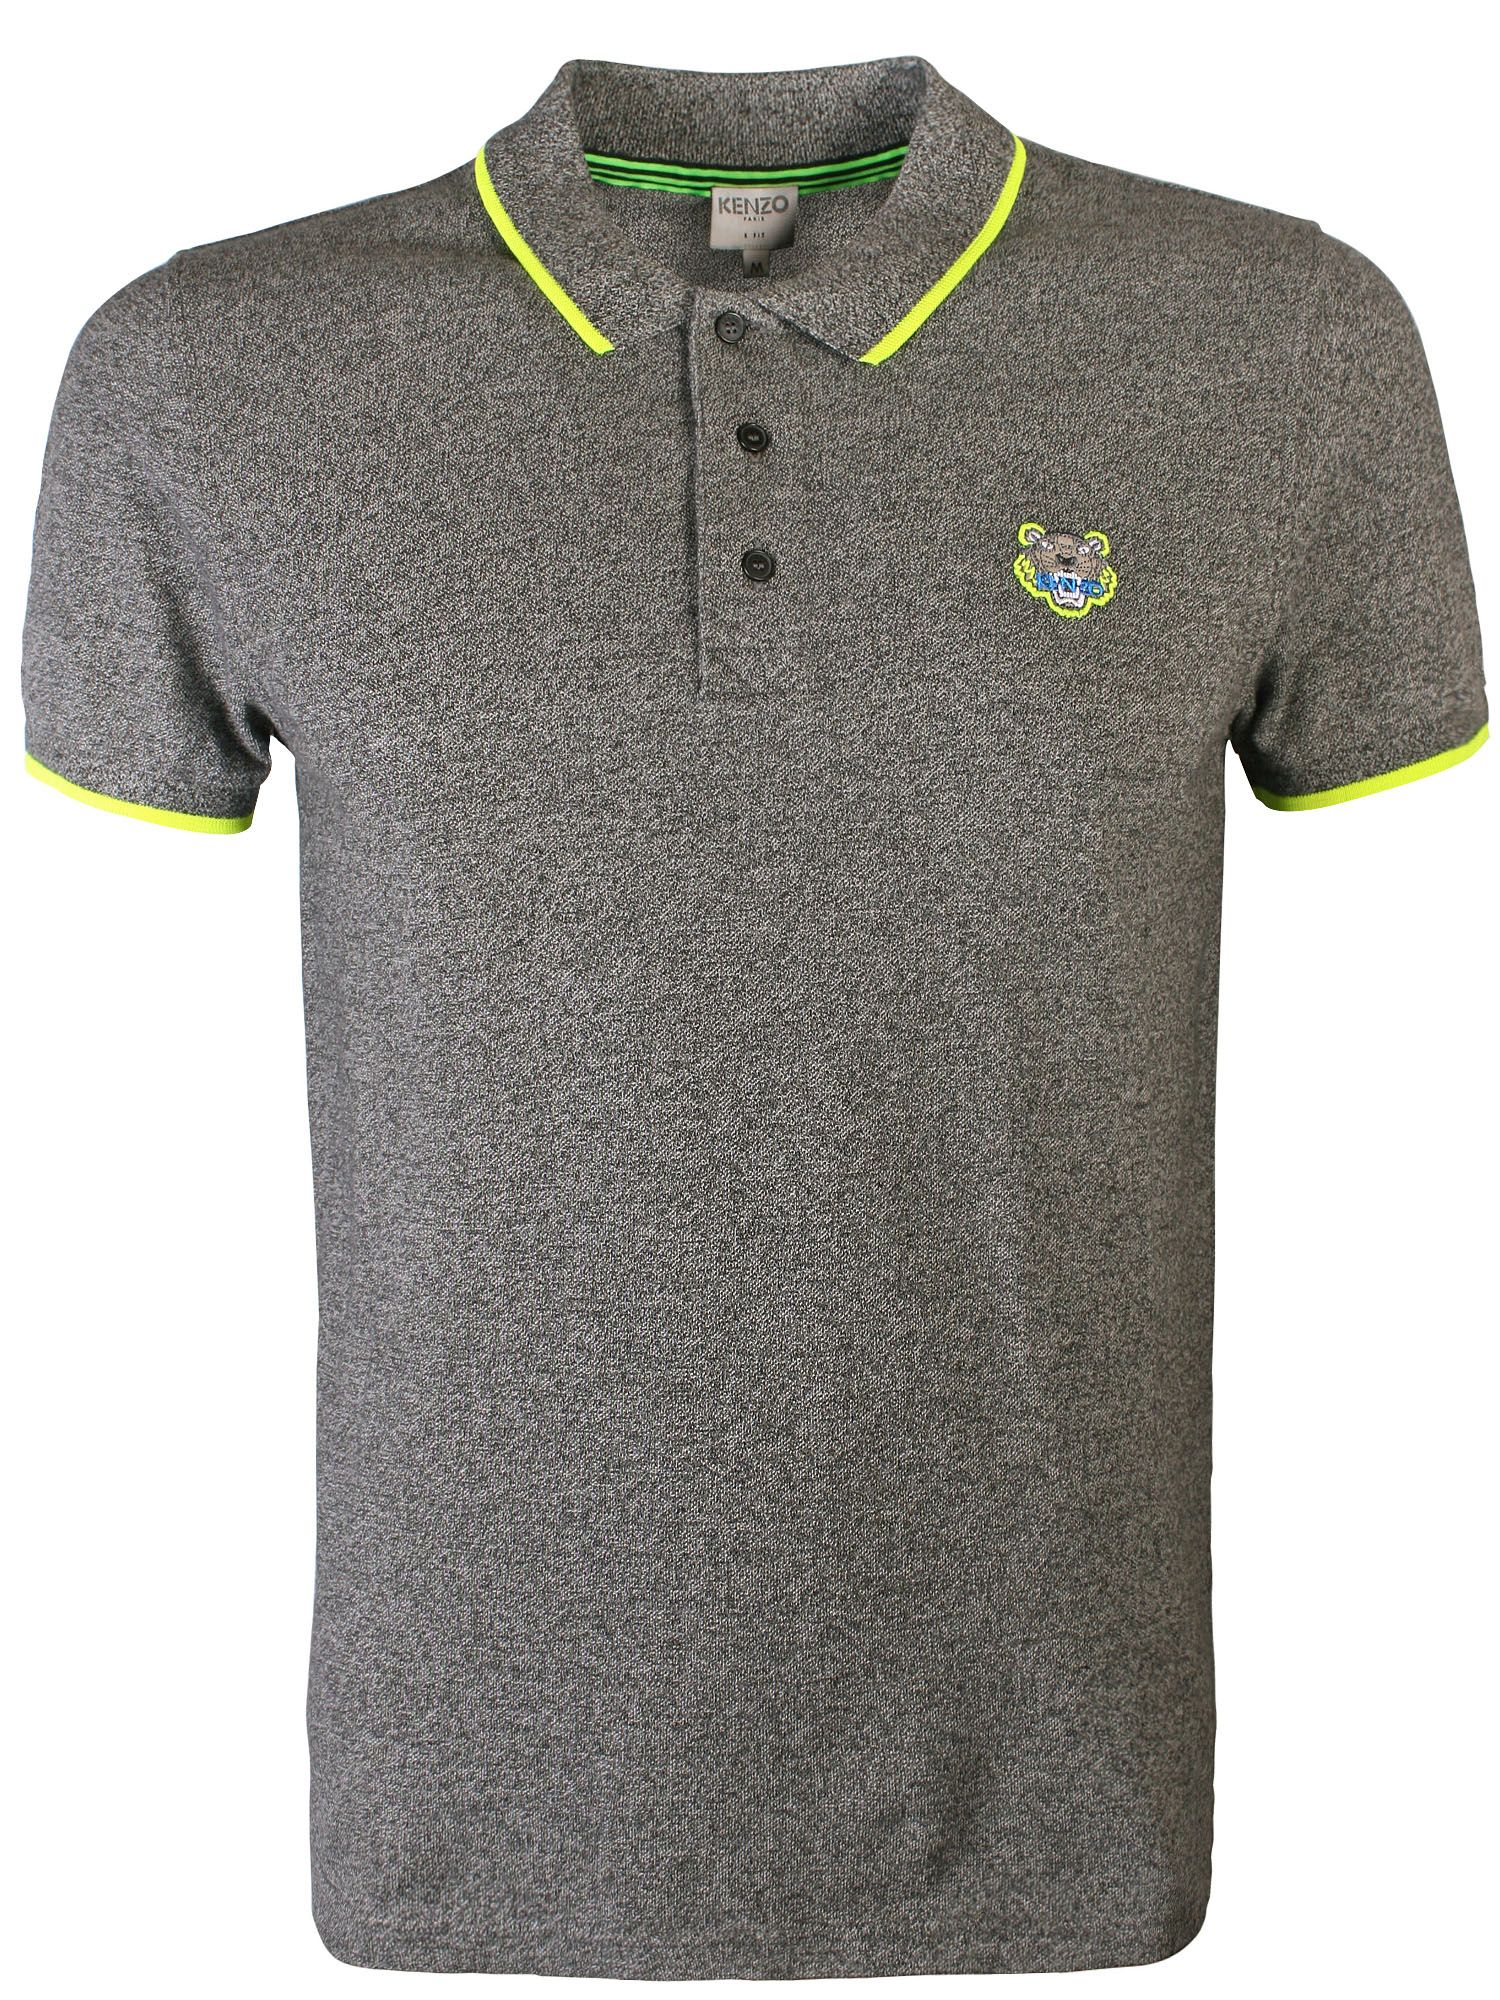 Kenzo Tipped Tiger Logo Polo Shirt Grey - Tipped tiger logo polo shirt in grey from kenzo features contrasting trim to the collar & sleeves, iconic tiger head embroidered at the left chest and a three button placket. It also features ribbed trims and short sleeves.